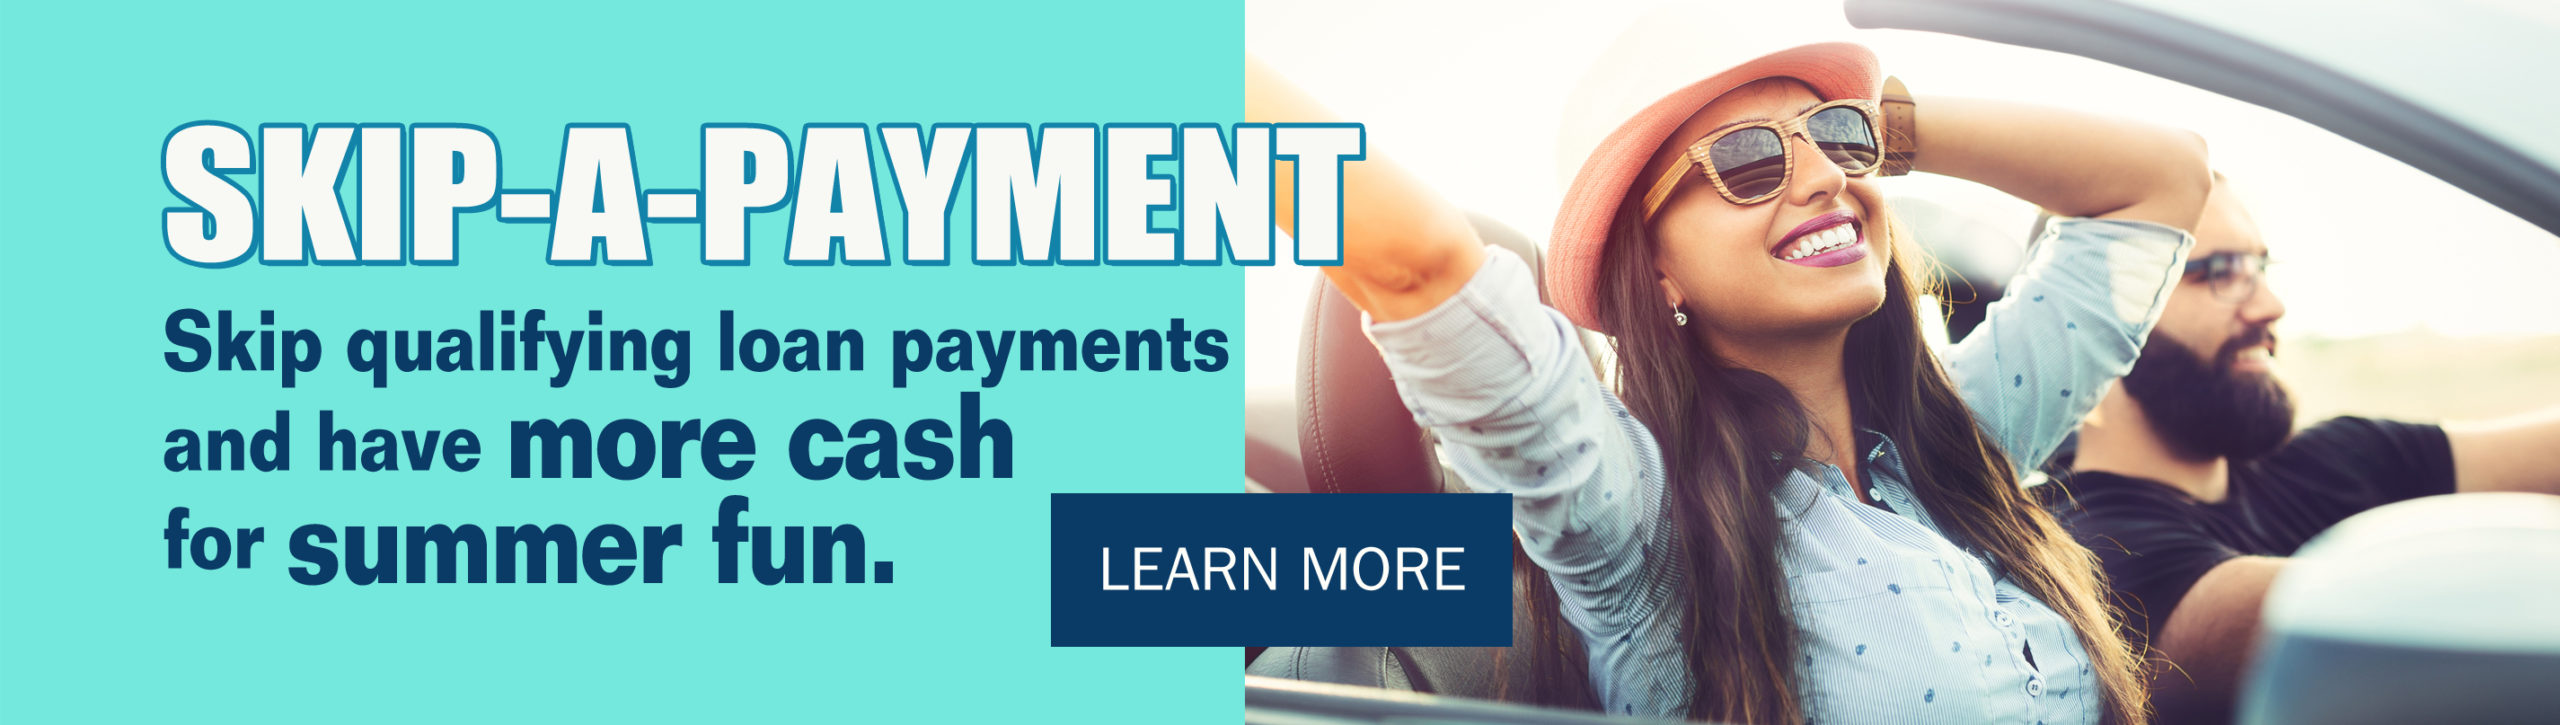 skip-a-payment. skip qualifying loan payments and have more cash for summer fun.